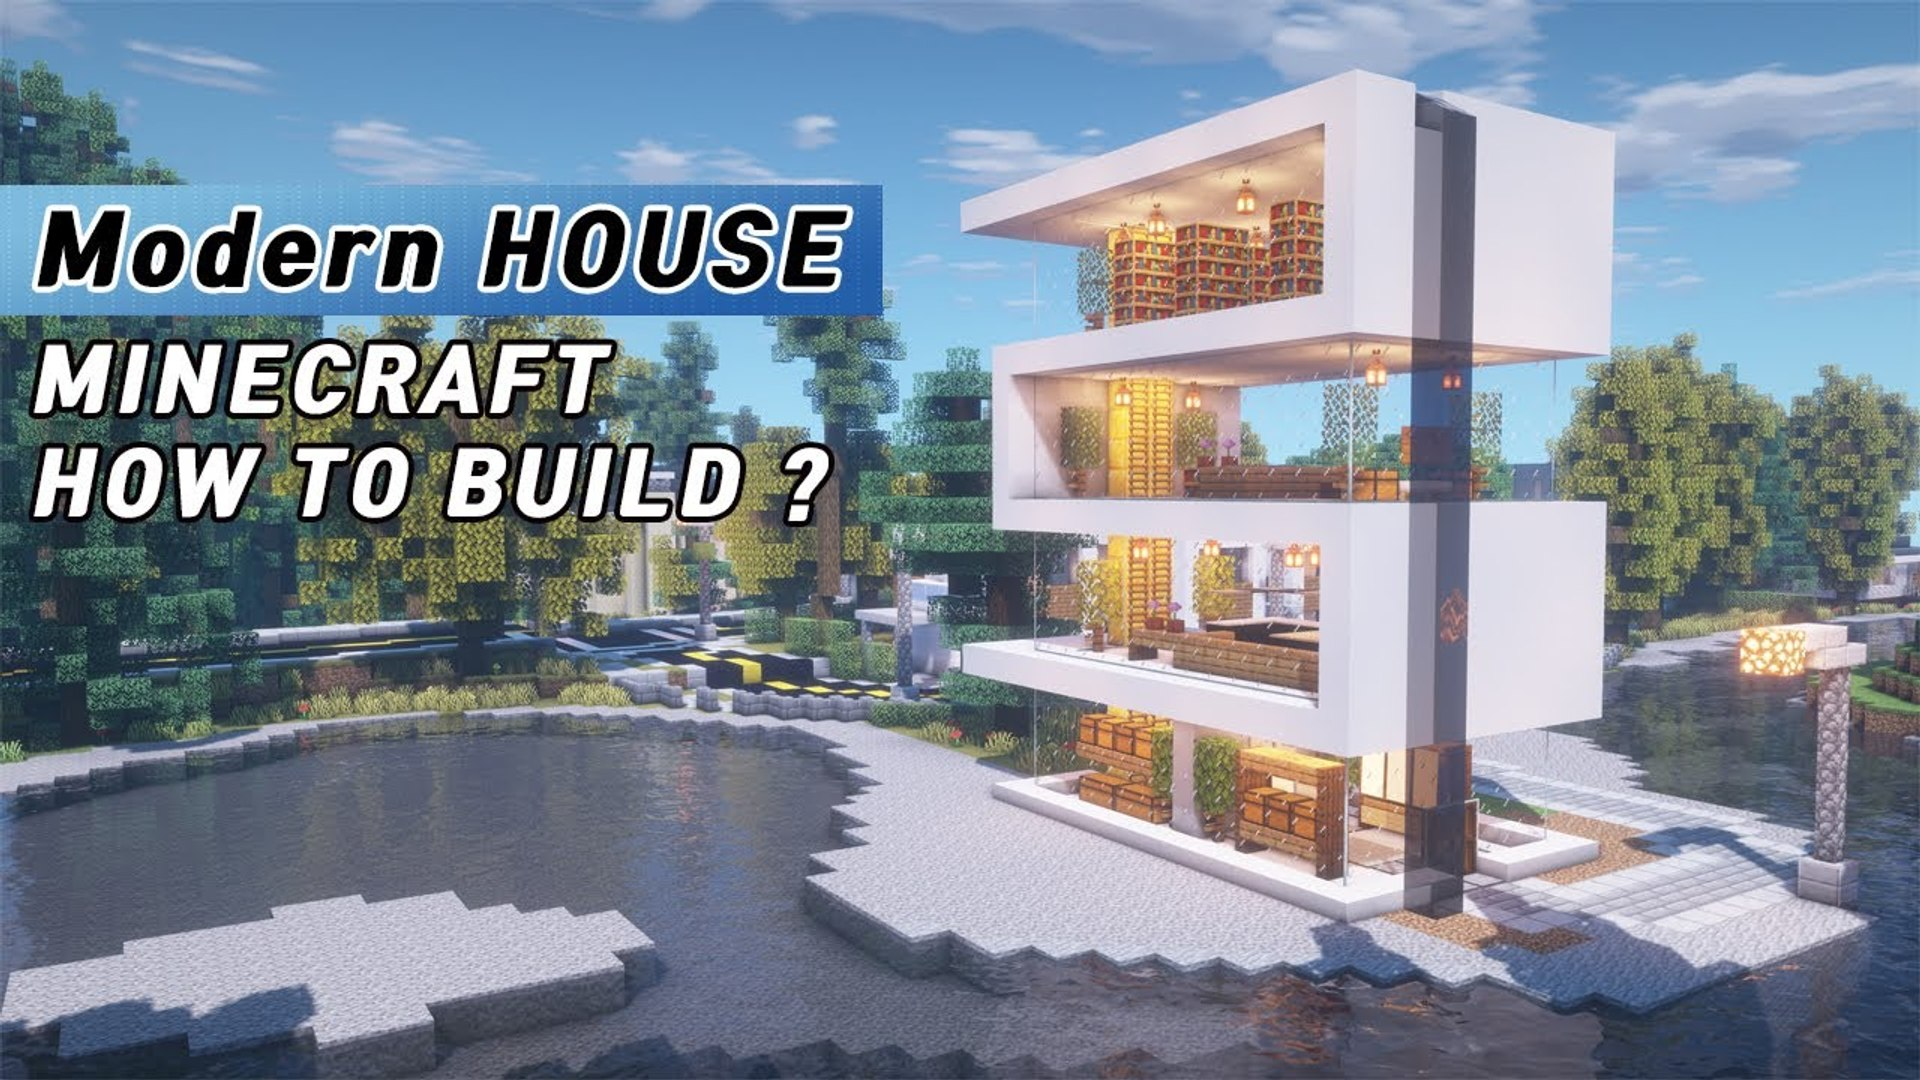 Minecraft Modern Water House Tutorial - How to build a house on the water  in Minecraft #12